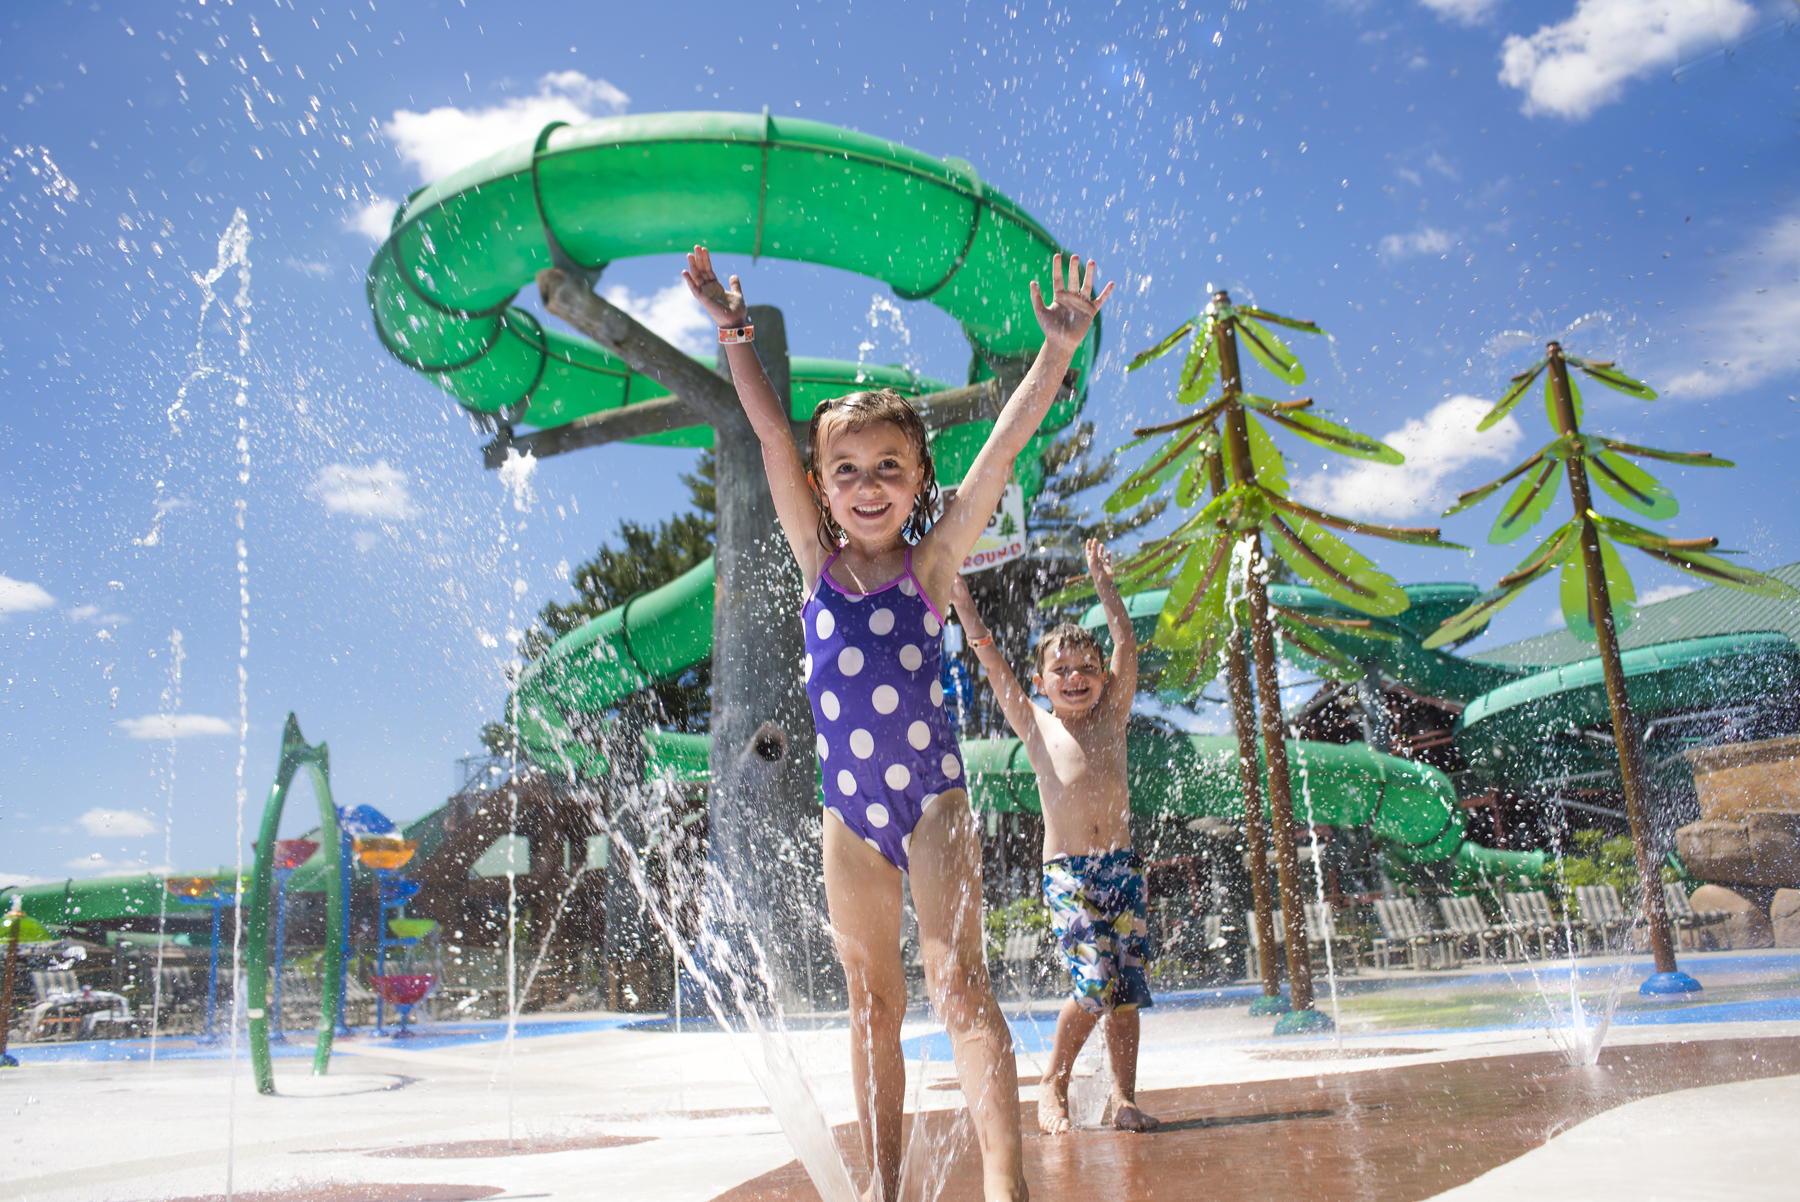 key considerations when building a splash pad commercial